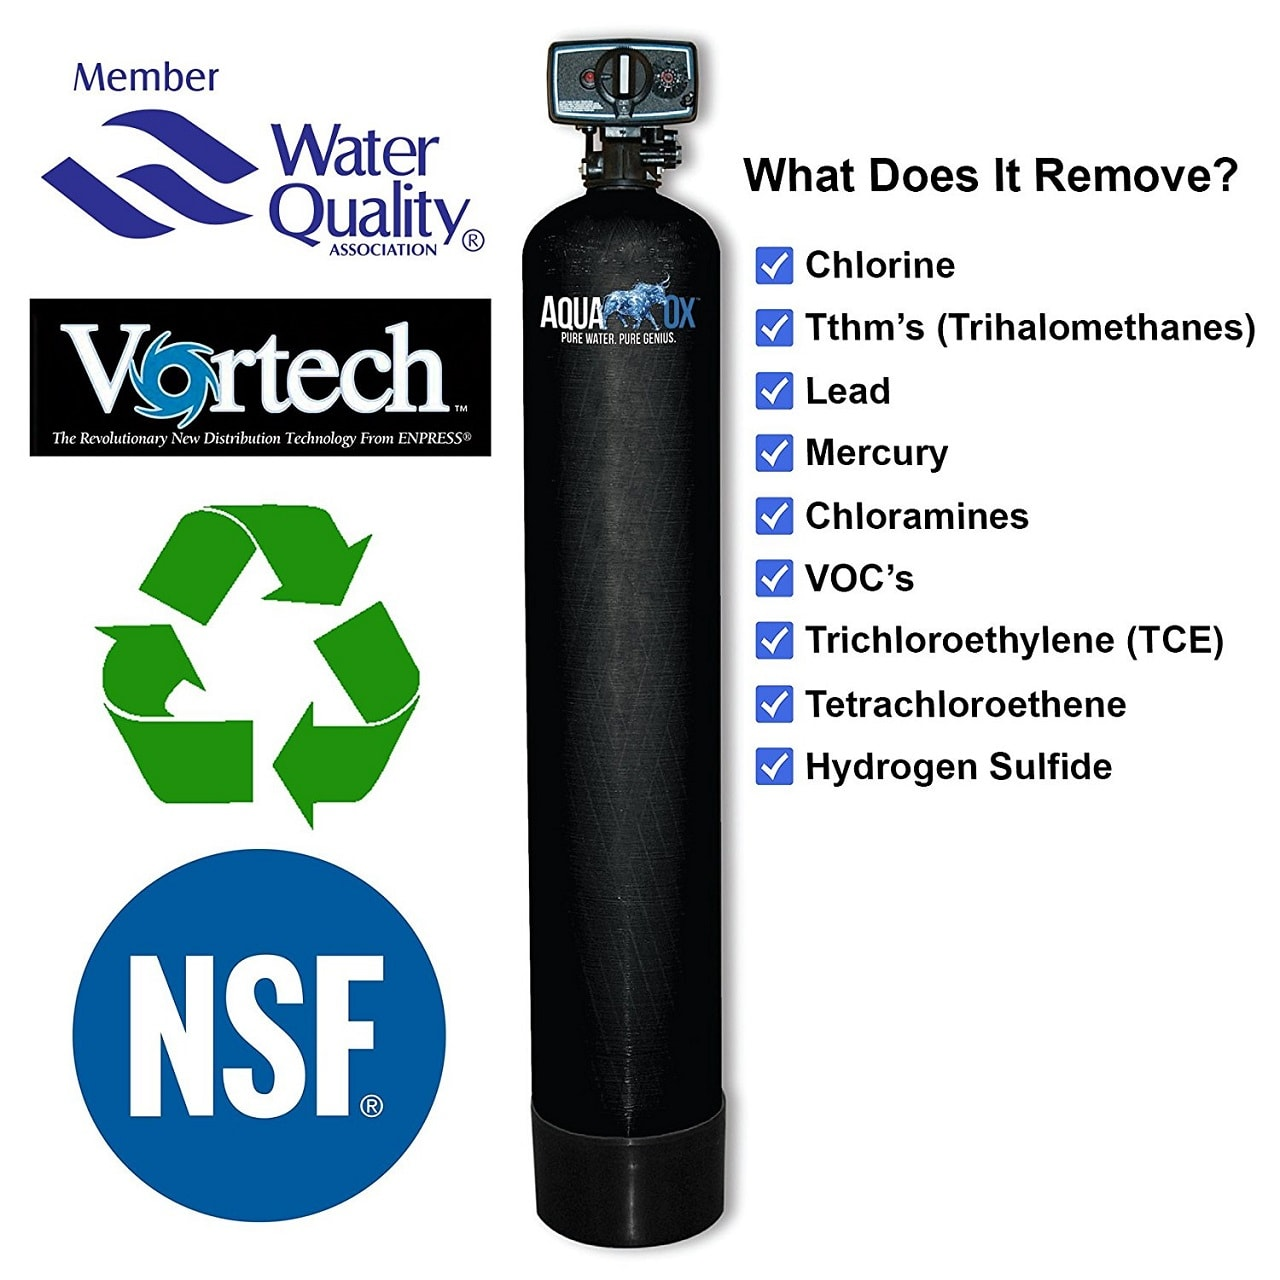 aquaox whole house water filter picture - Whole House Water Filtration System